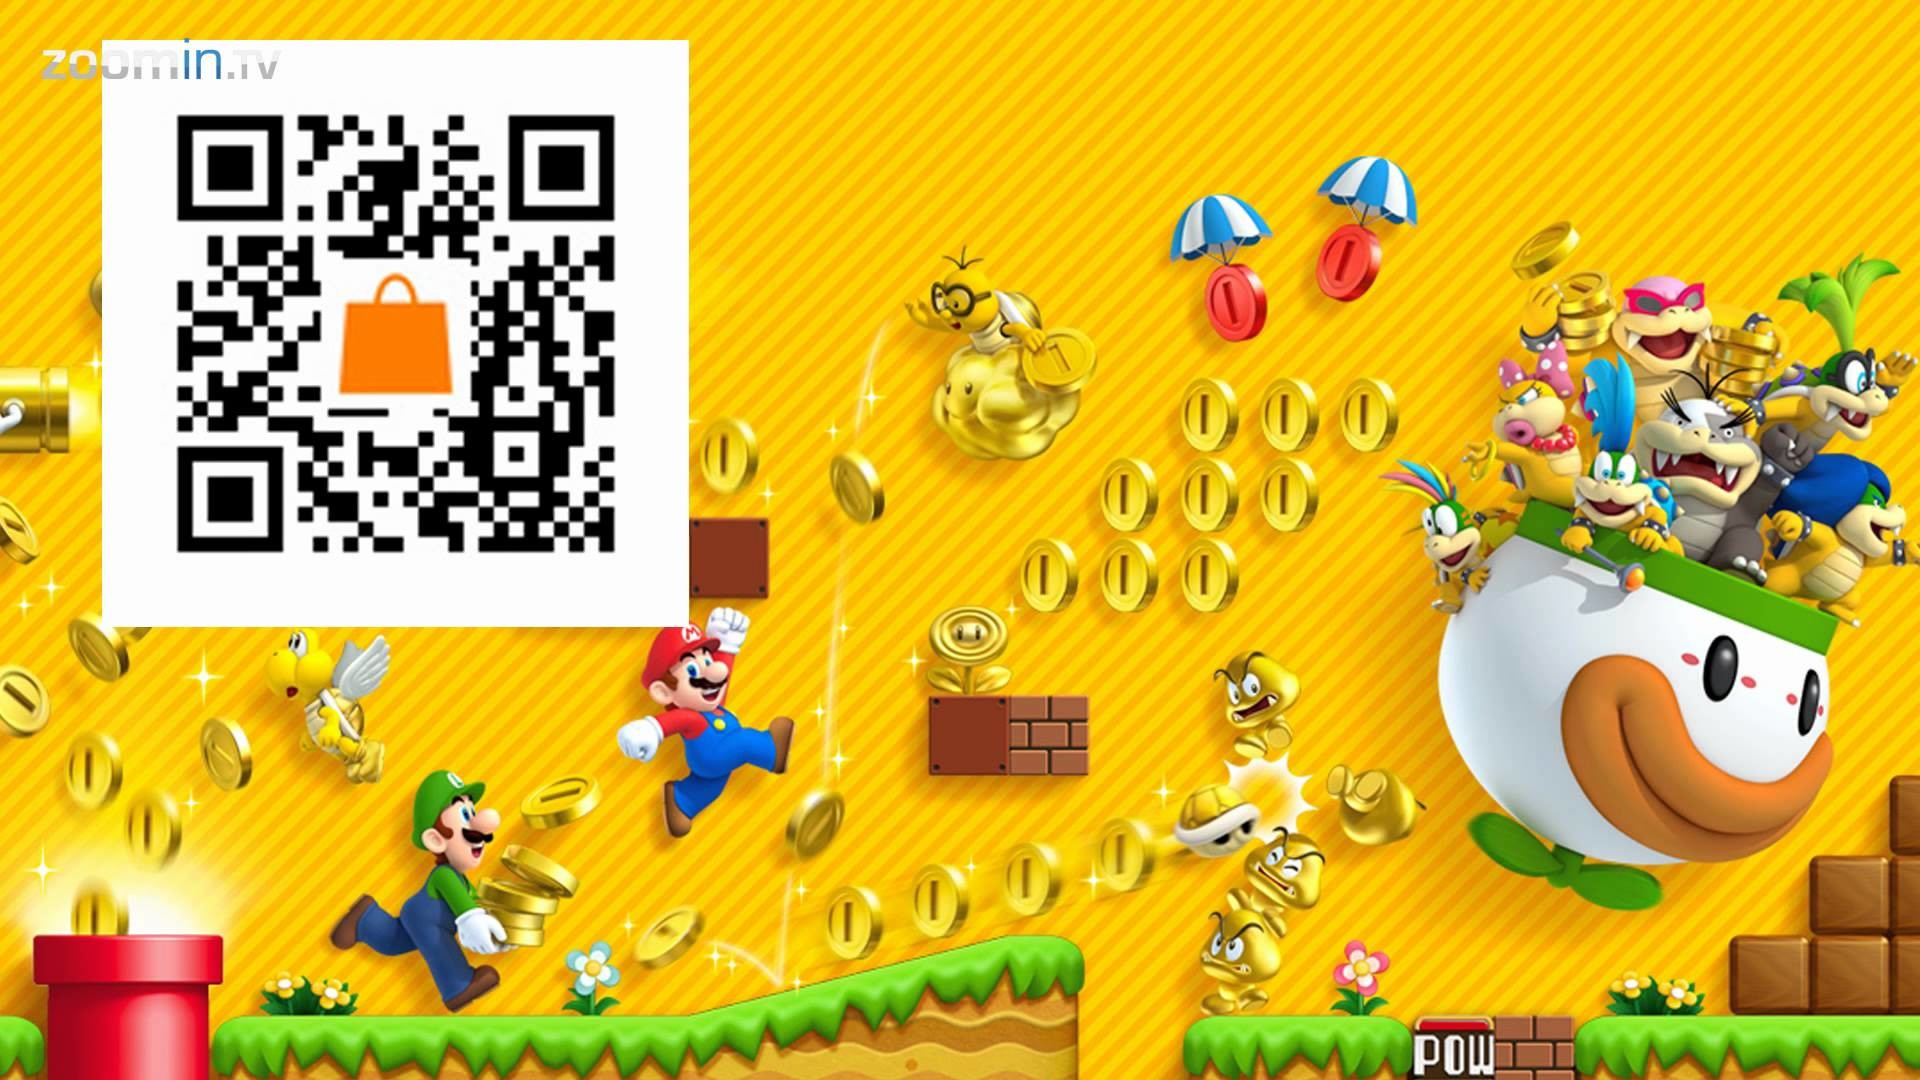 Nintendo 3ds Wallpaper Codes 67 Images